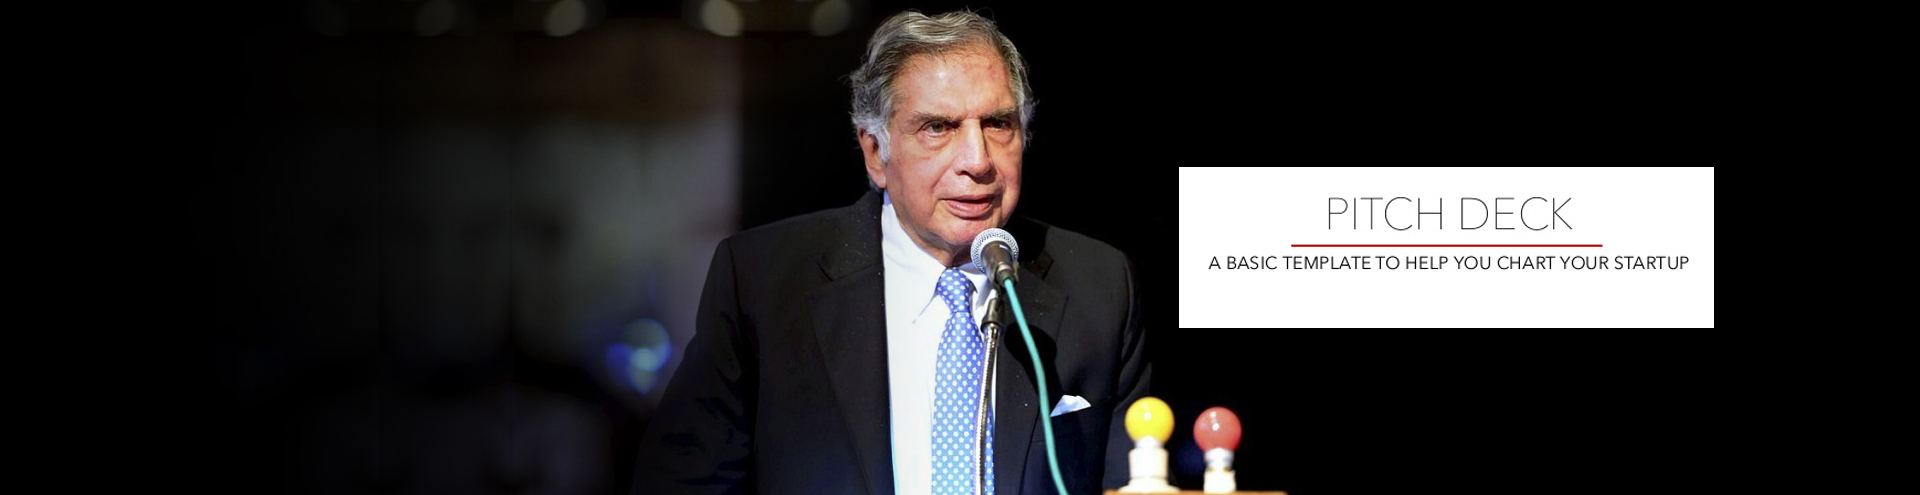 How to raise funds - Pitch Deck explained by Mr. Ratan Tata